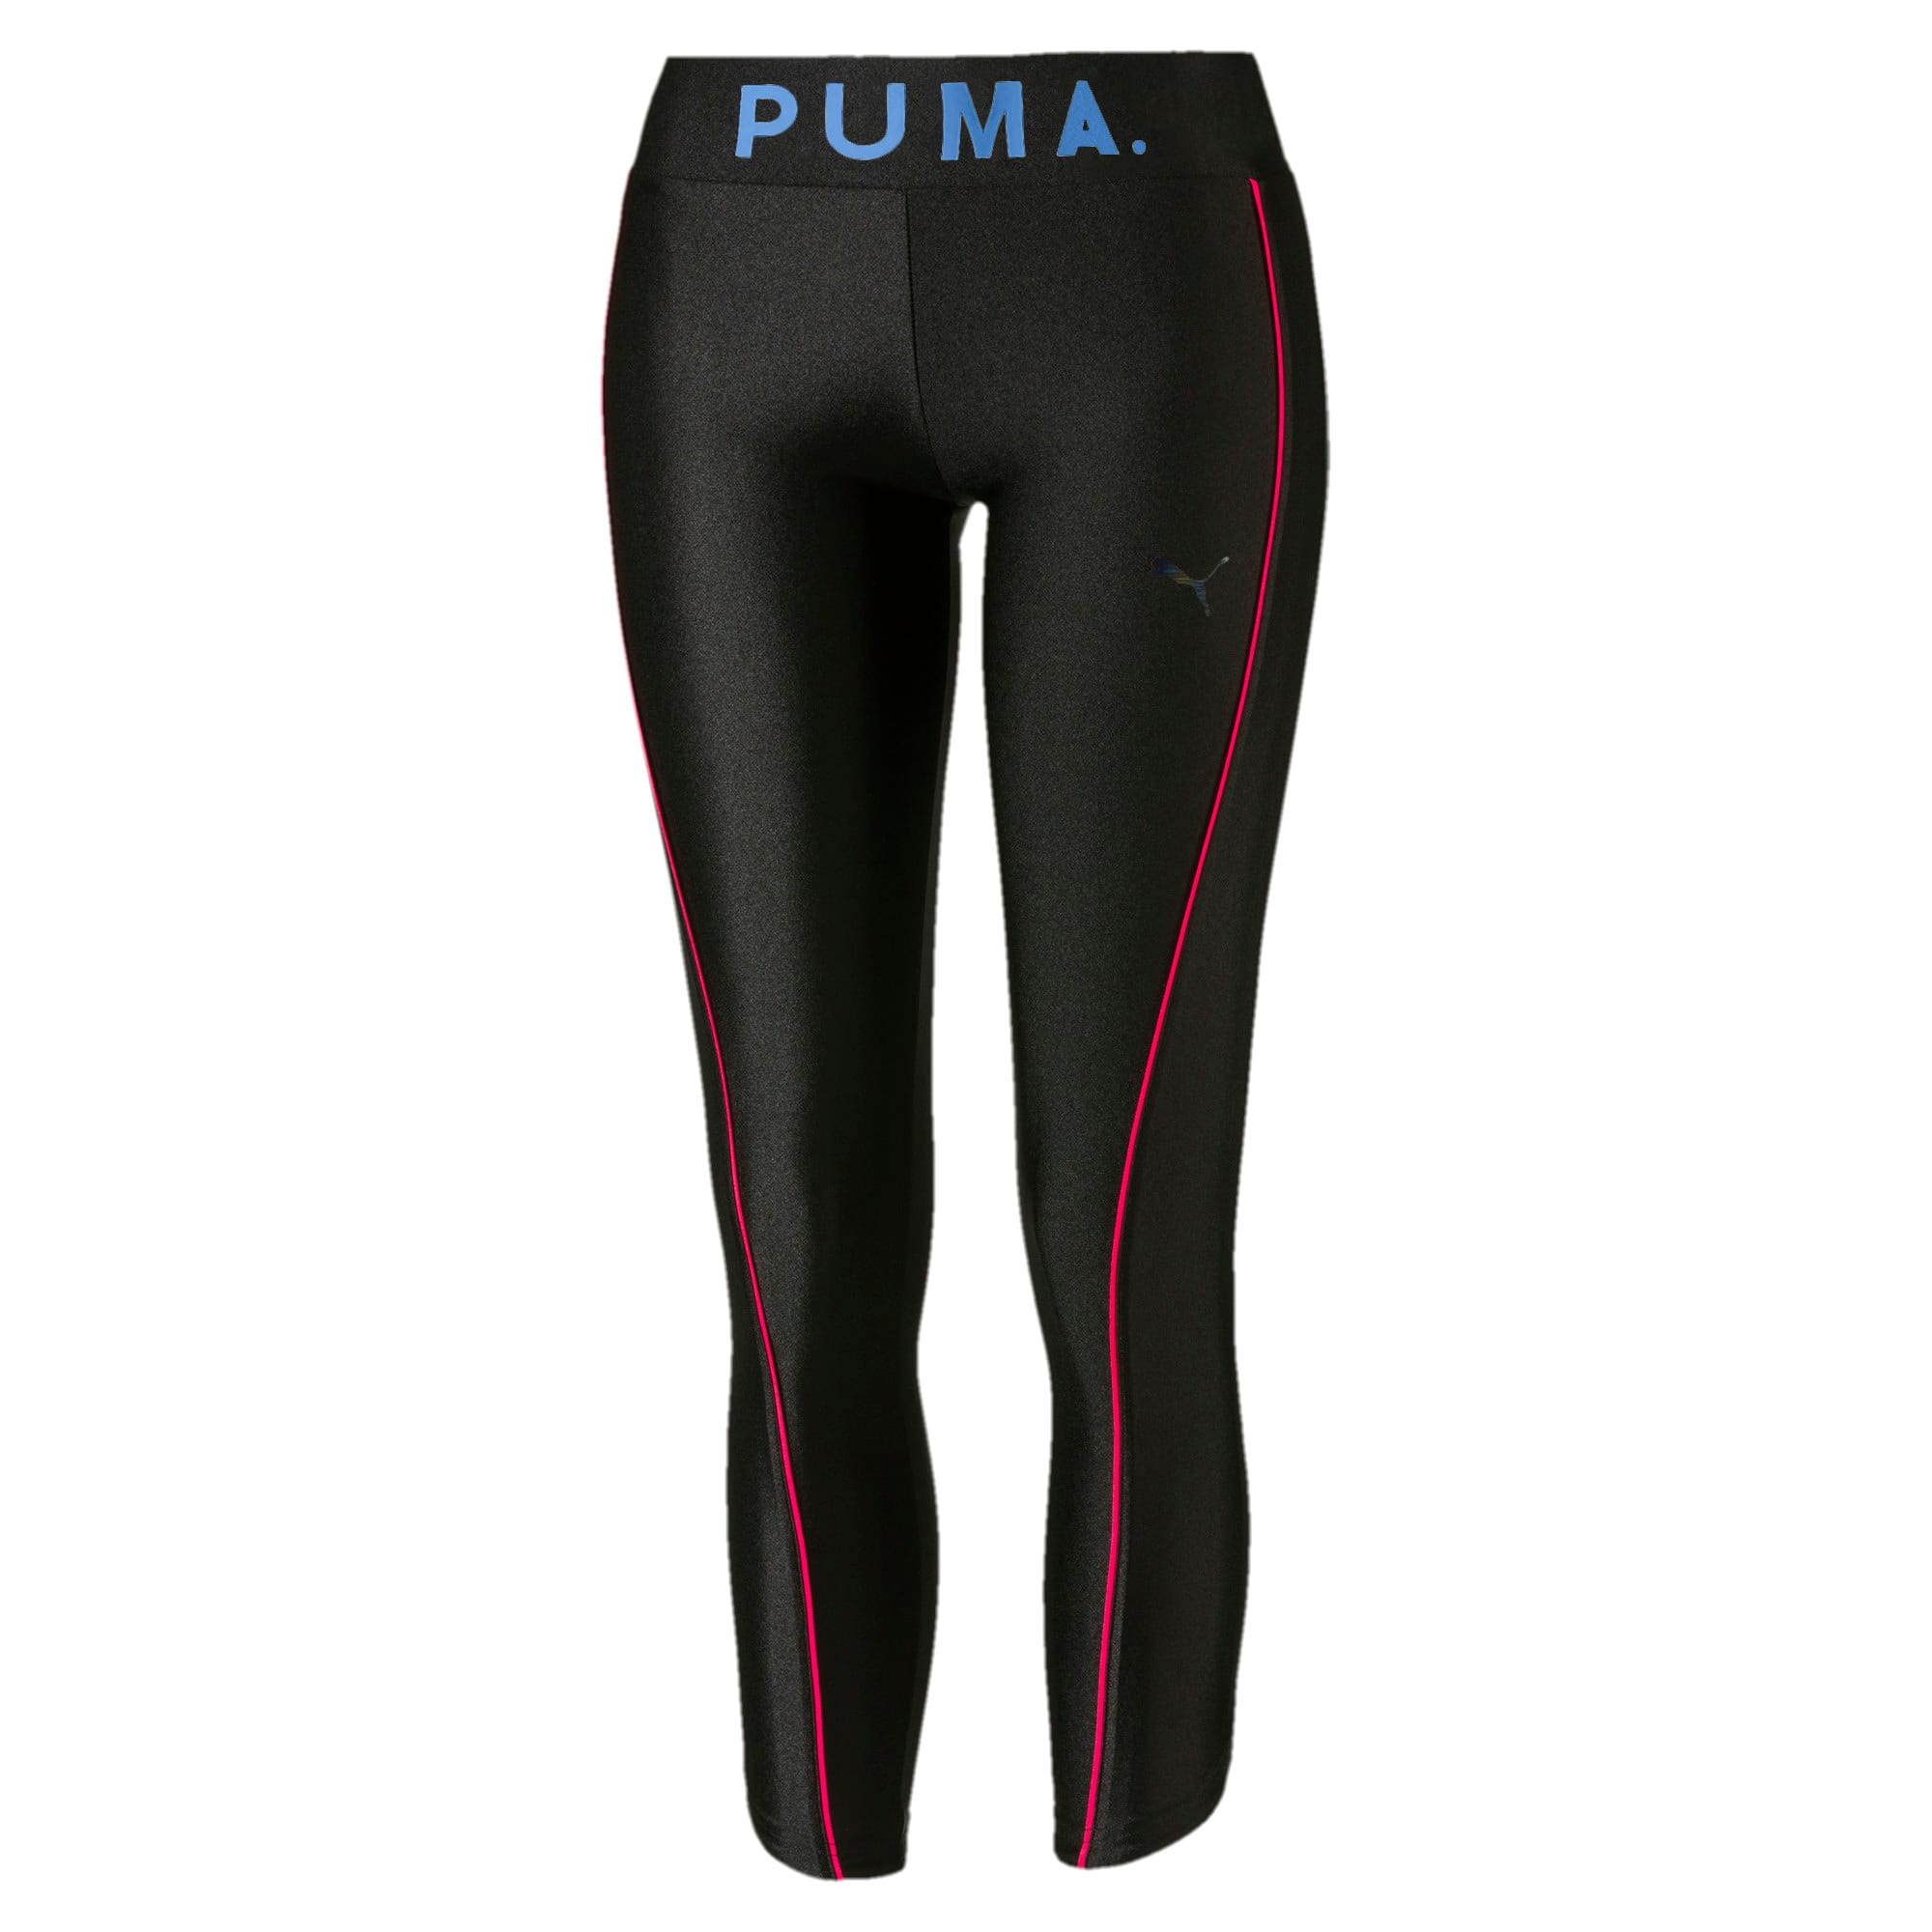 Thumbnail 1 of Chase Graphic 7/8 Women's Leggings, Puma Black, medium